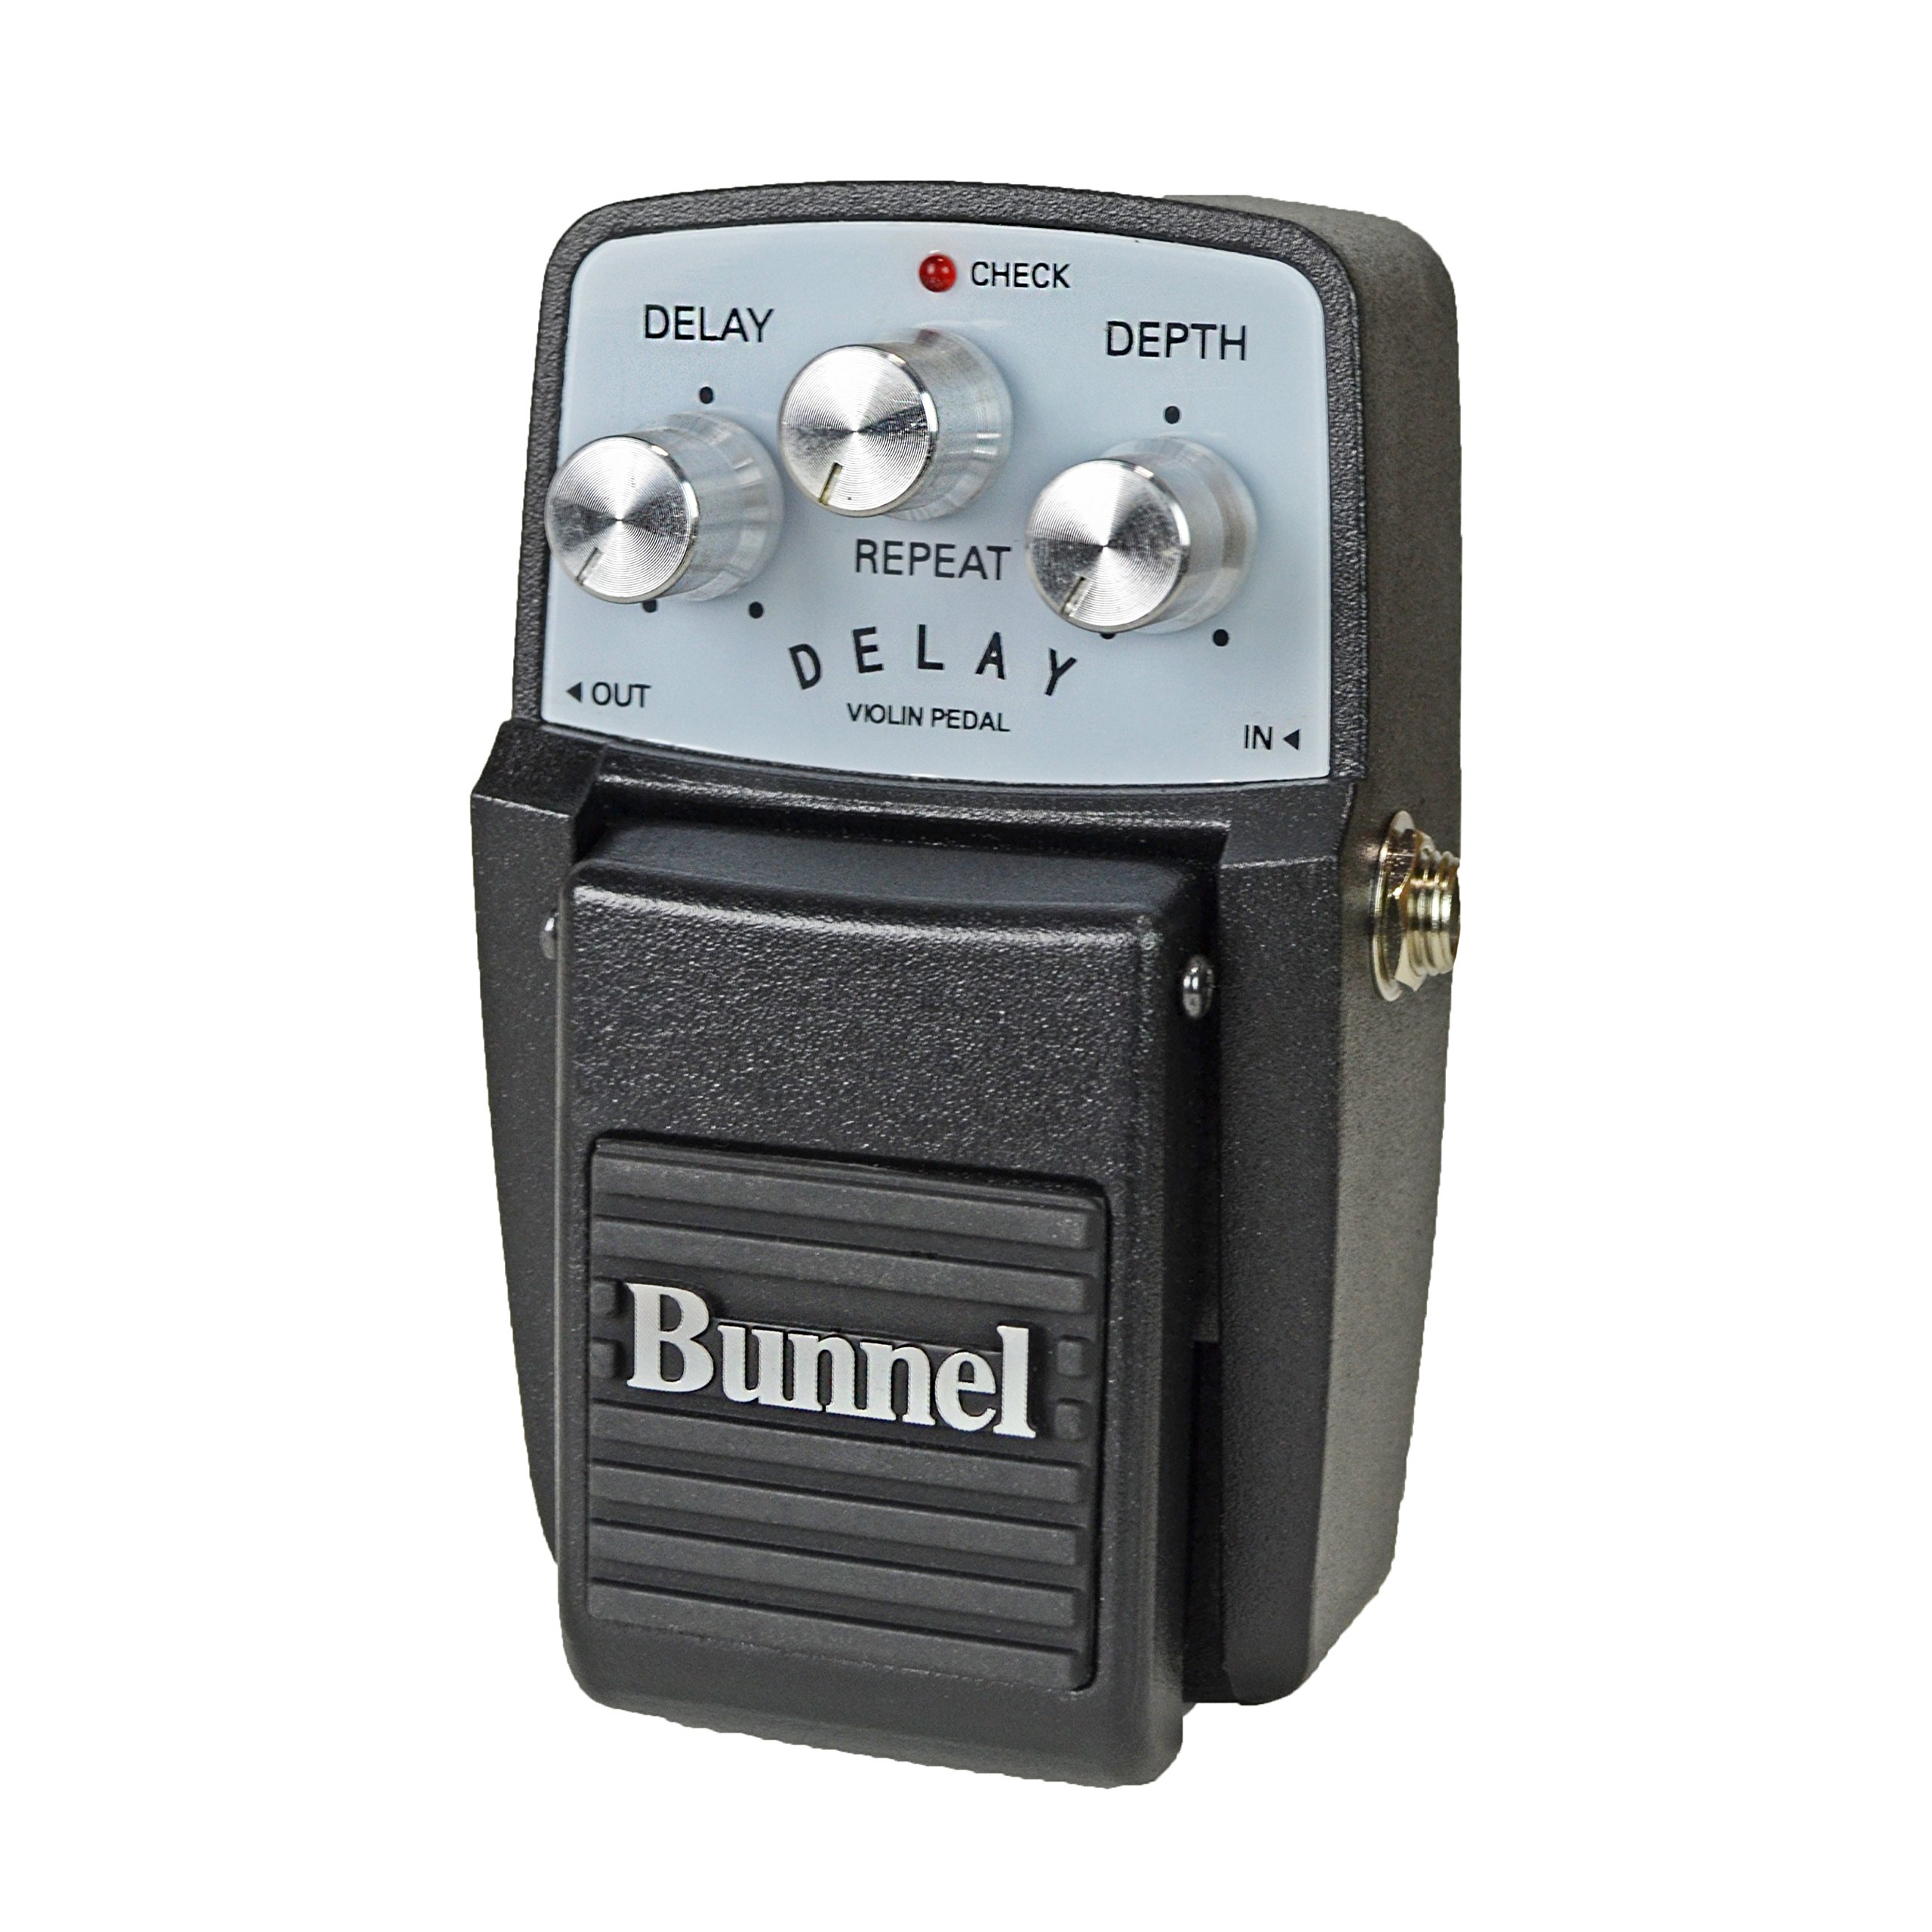 Bunnel Delay Violin Effects Pedal by Kennedy Violins